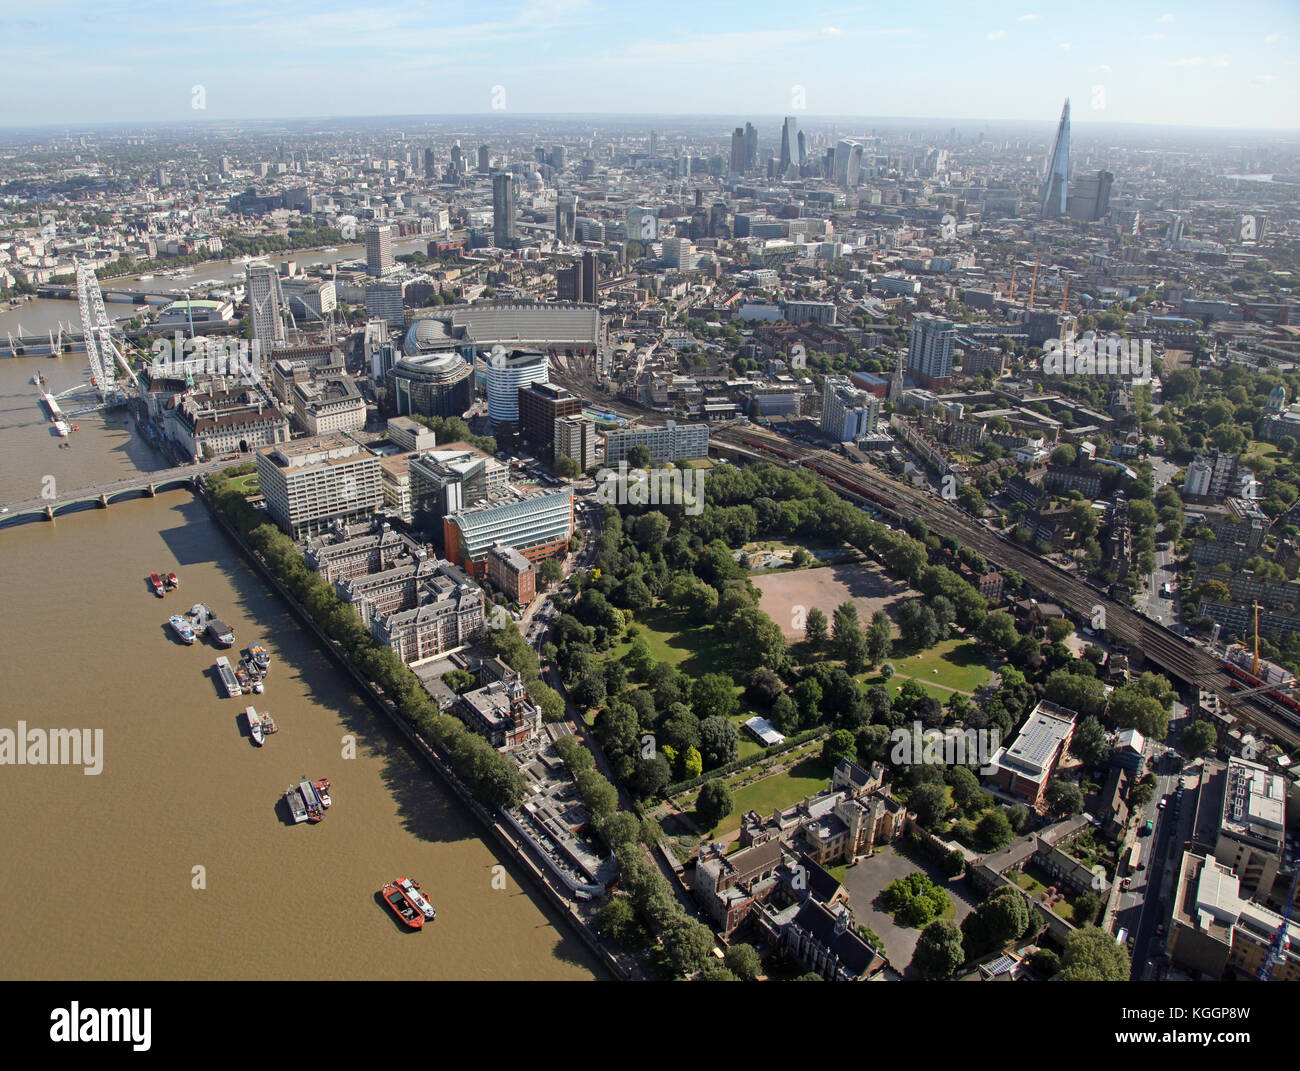 aerial view of Lambeth Palace & St Thomas' Hospital looking toward The City of London skyline, UK - Stock Image